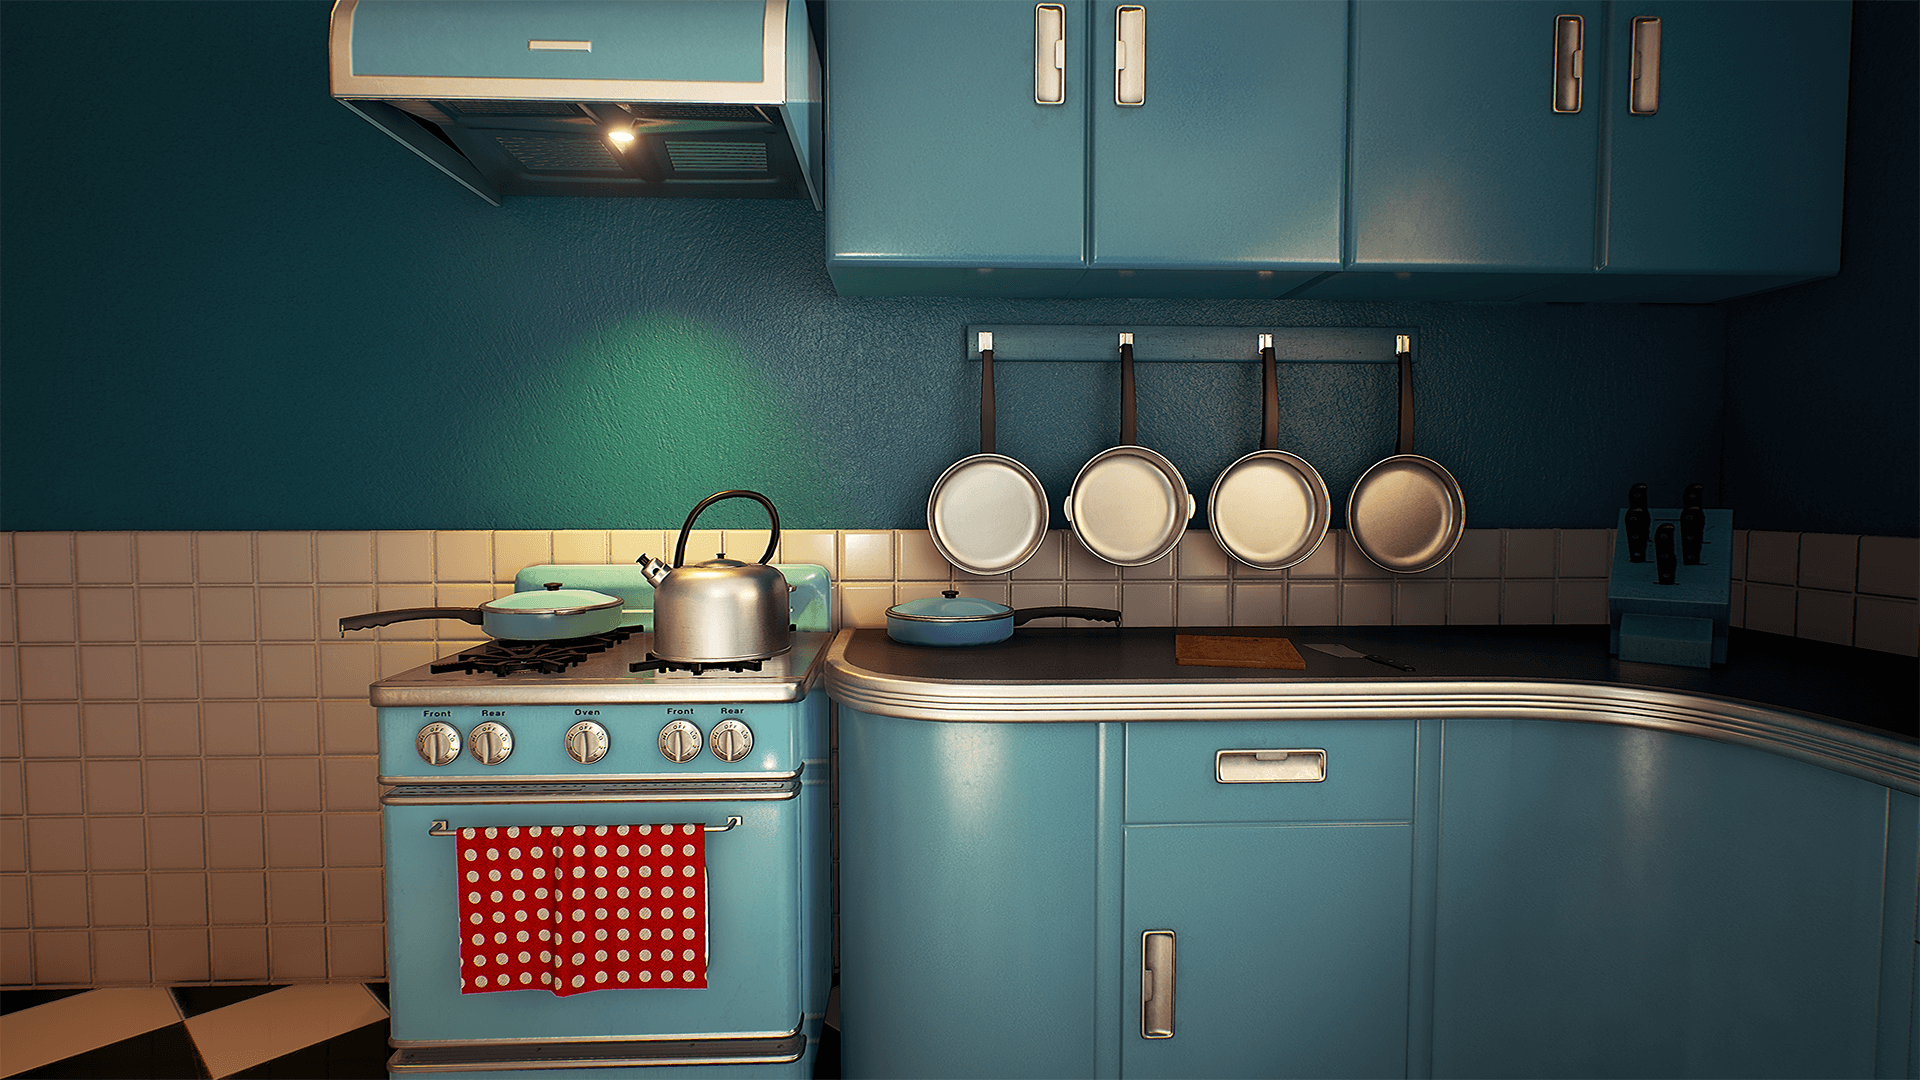 Customizable retro kitchen by nguyen cong thai in for Retro küchen